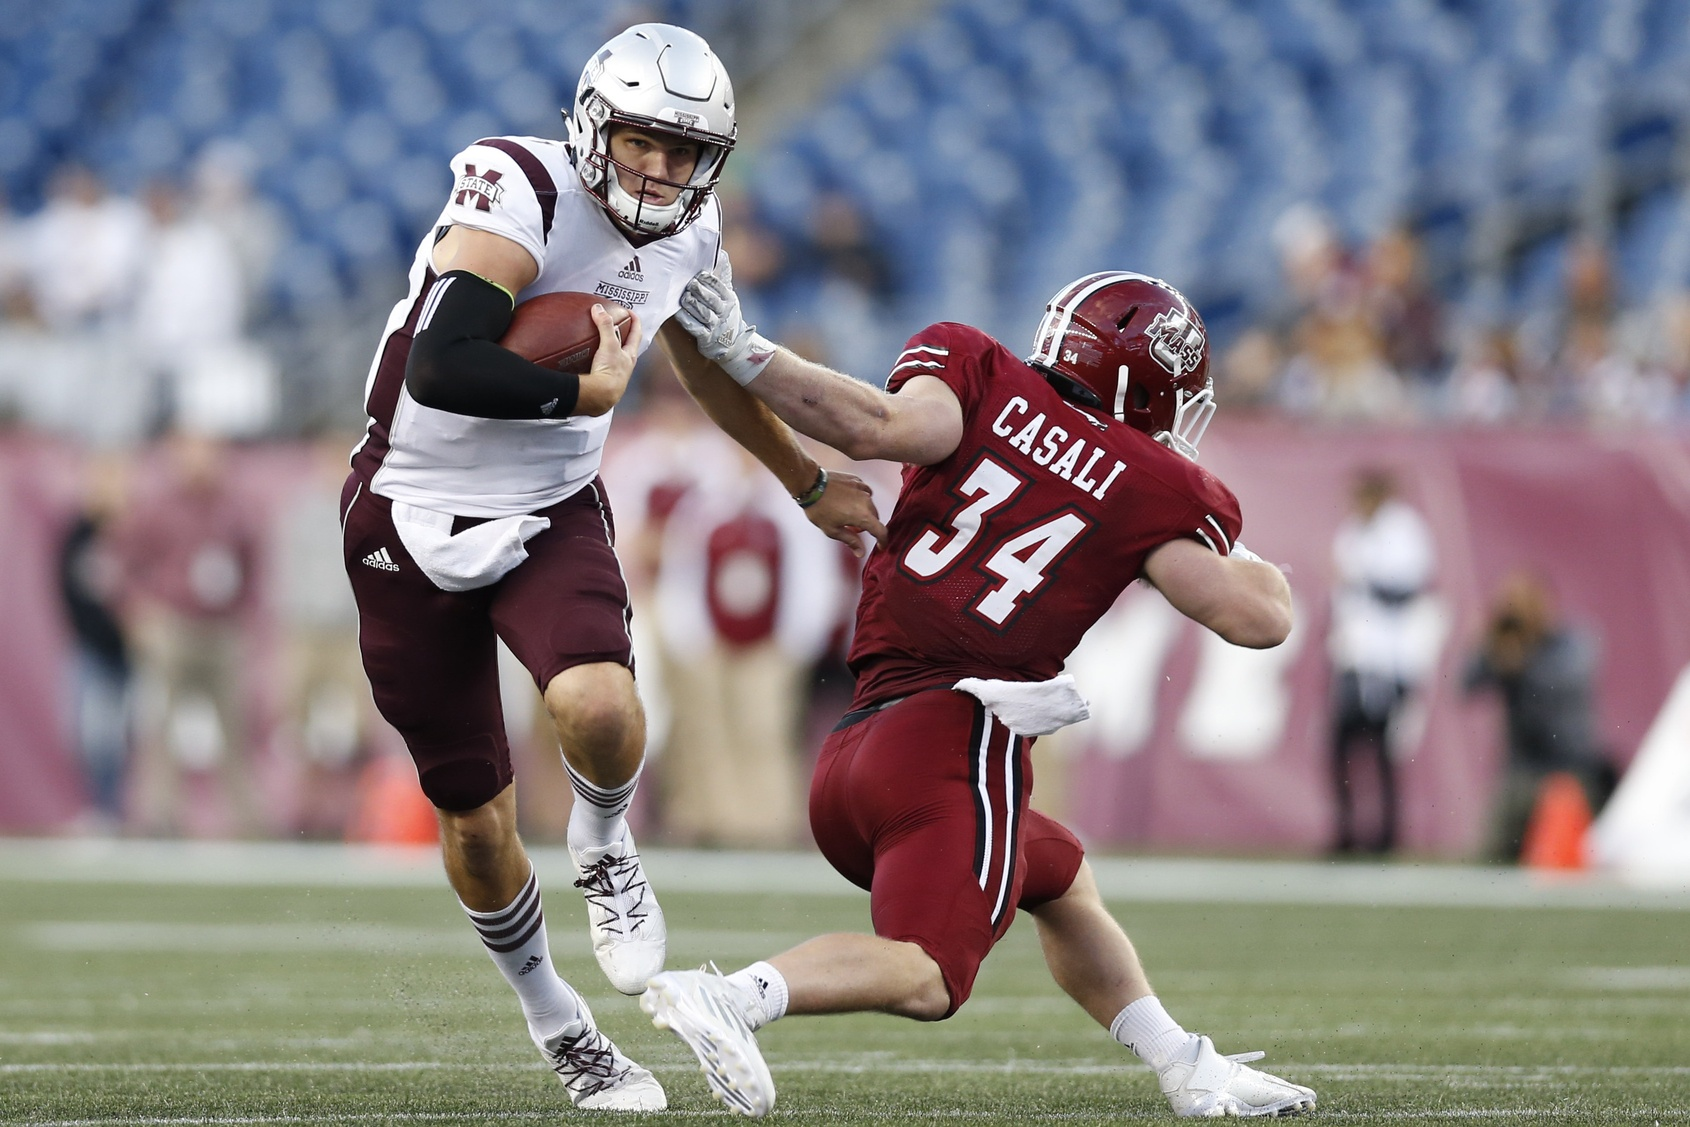 Sep 24, 2016; Foxborough, MA, USA; Mississippi State Bulldogs quarterback Nick Fitzgerald (7) evades a tackle by Massachusetts Minutemen line backer Steve Casali (34) during the third quarter at Gillette Stadium. Mississippi State won 47-35. Credit: Greg M. Cooper-USA TODAY Sports